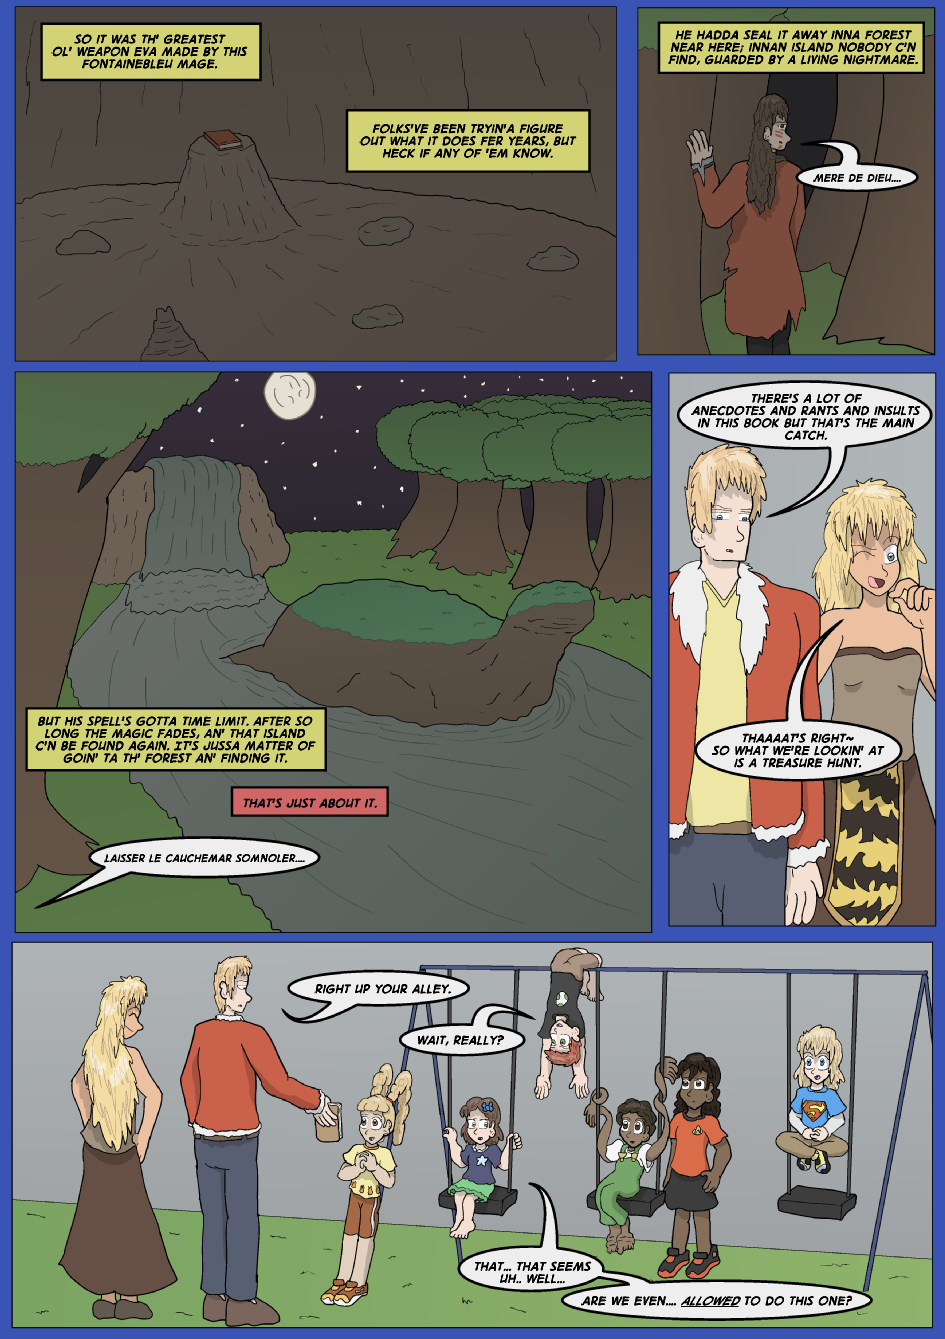 The Lost Spell of Baron Fontainebleu, Page 1